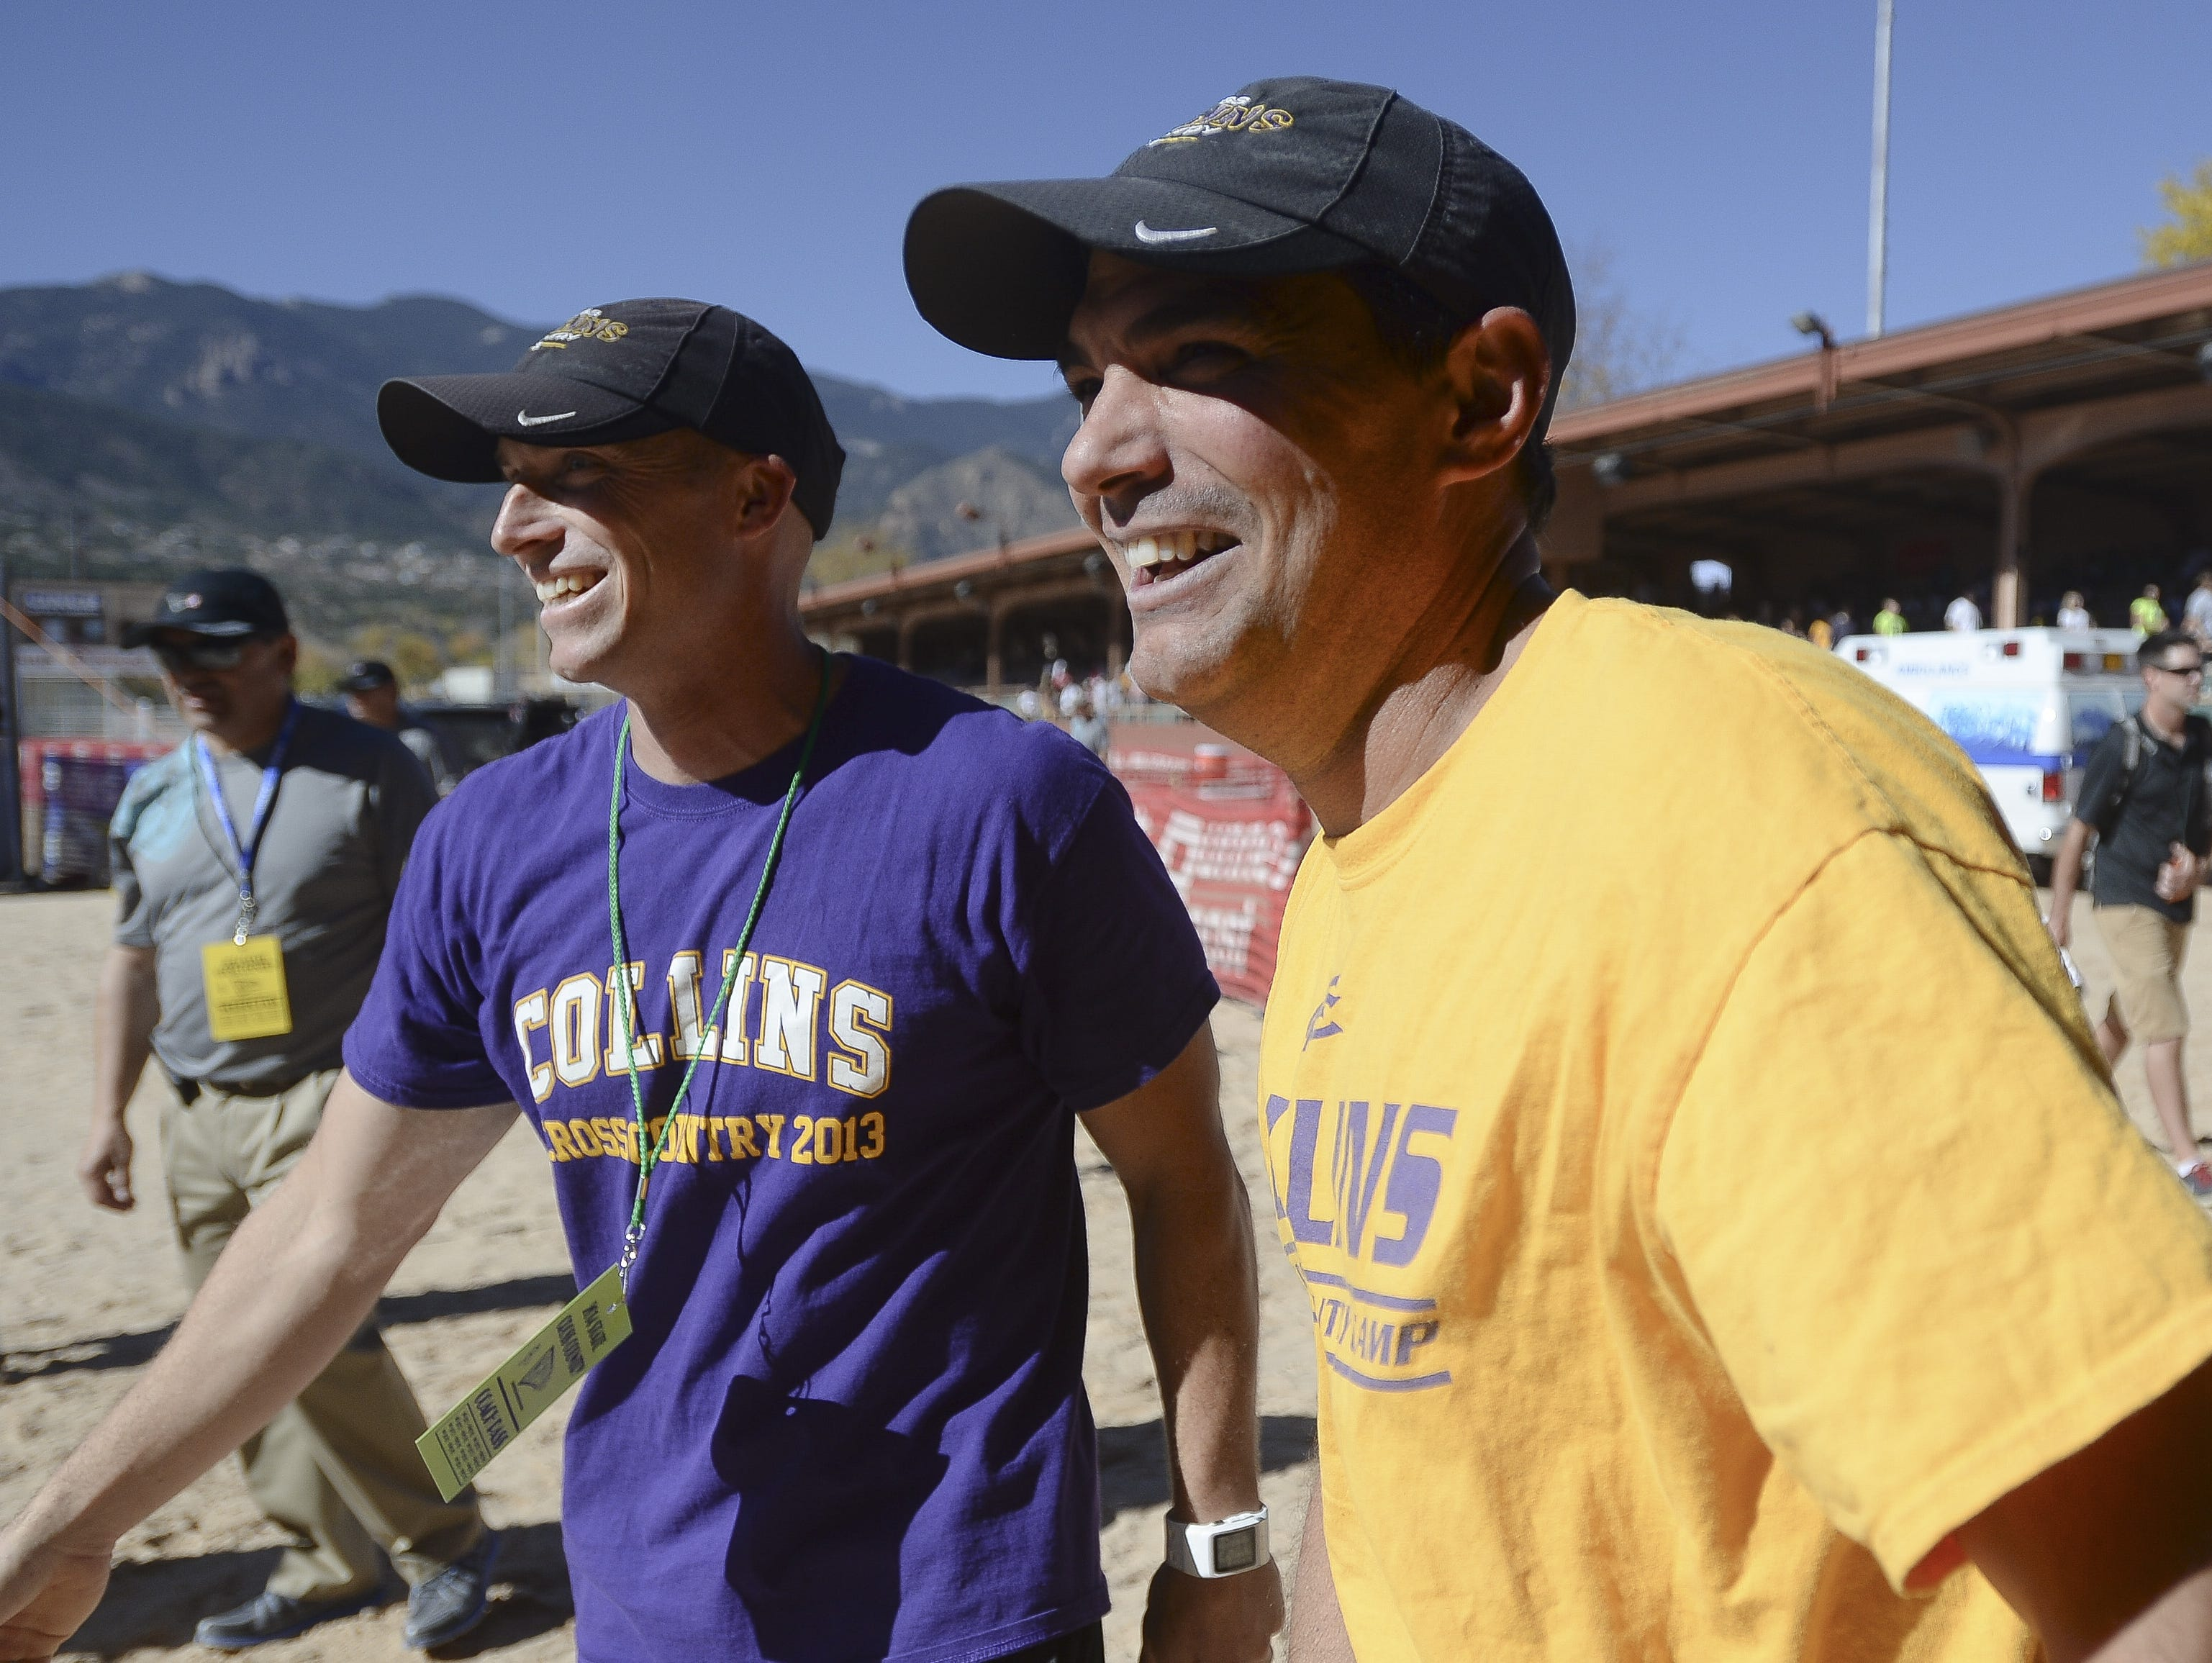 Conrad Crist, left, has been named the head cross country coach at Fort Collins. He says longtime coach Chris Suppes, right, will co-coach the team with him.